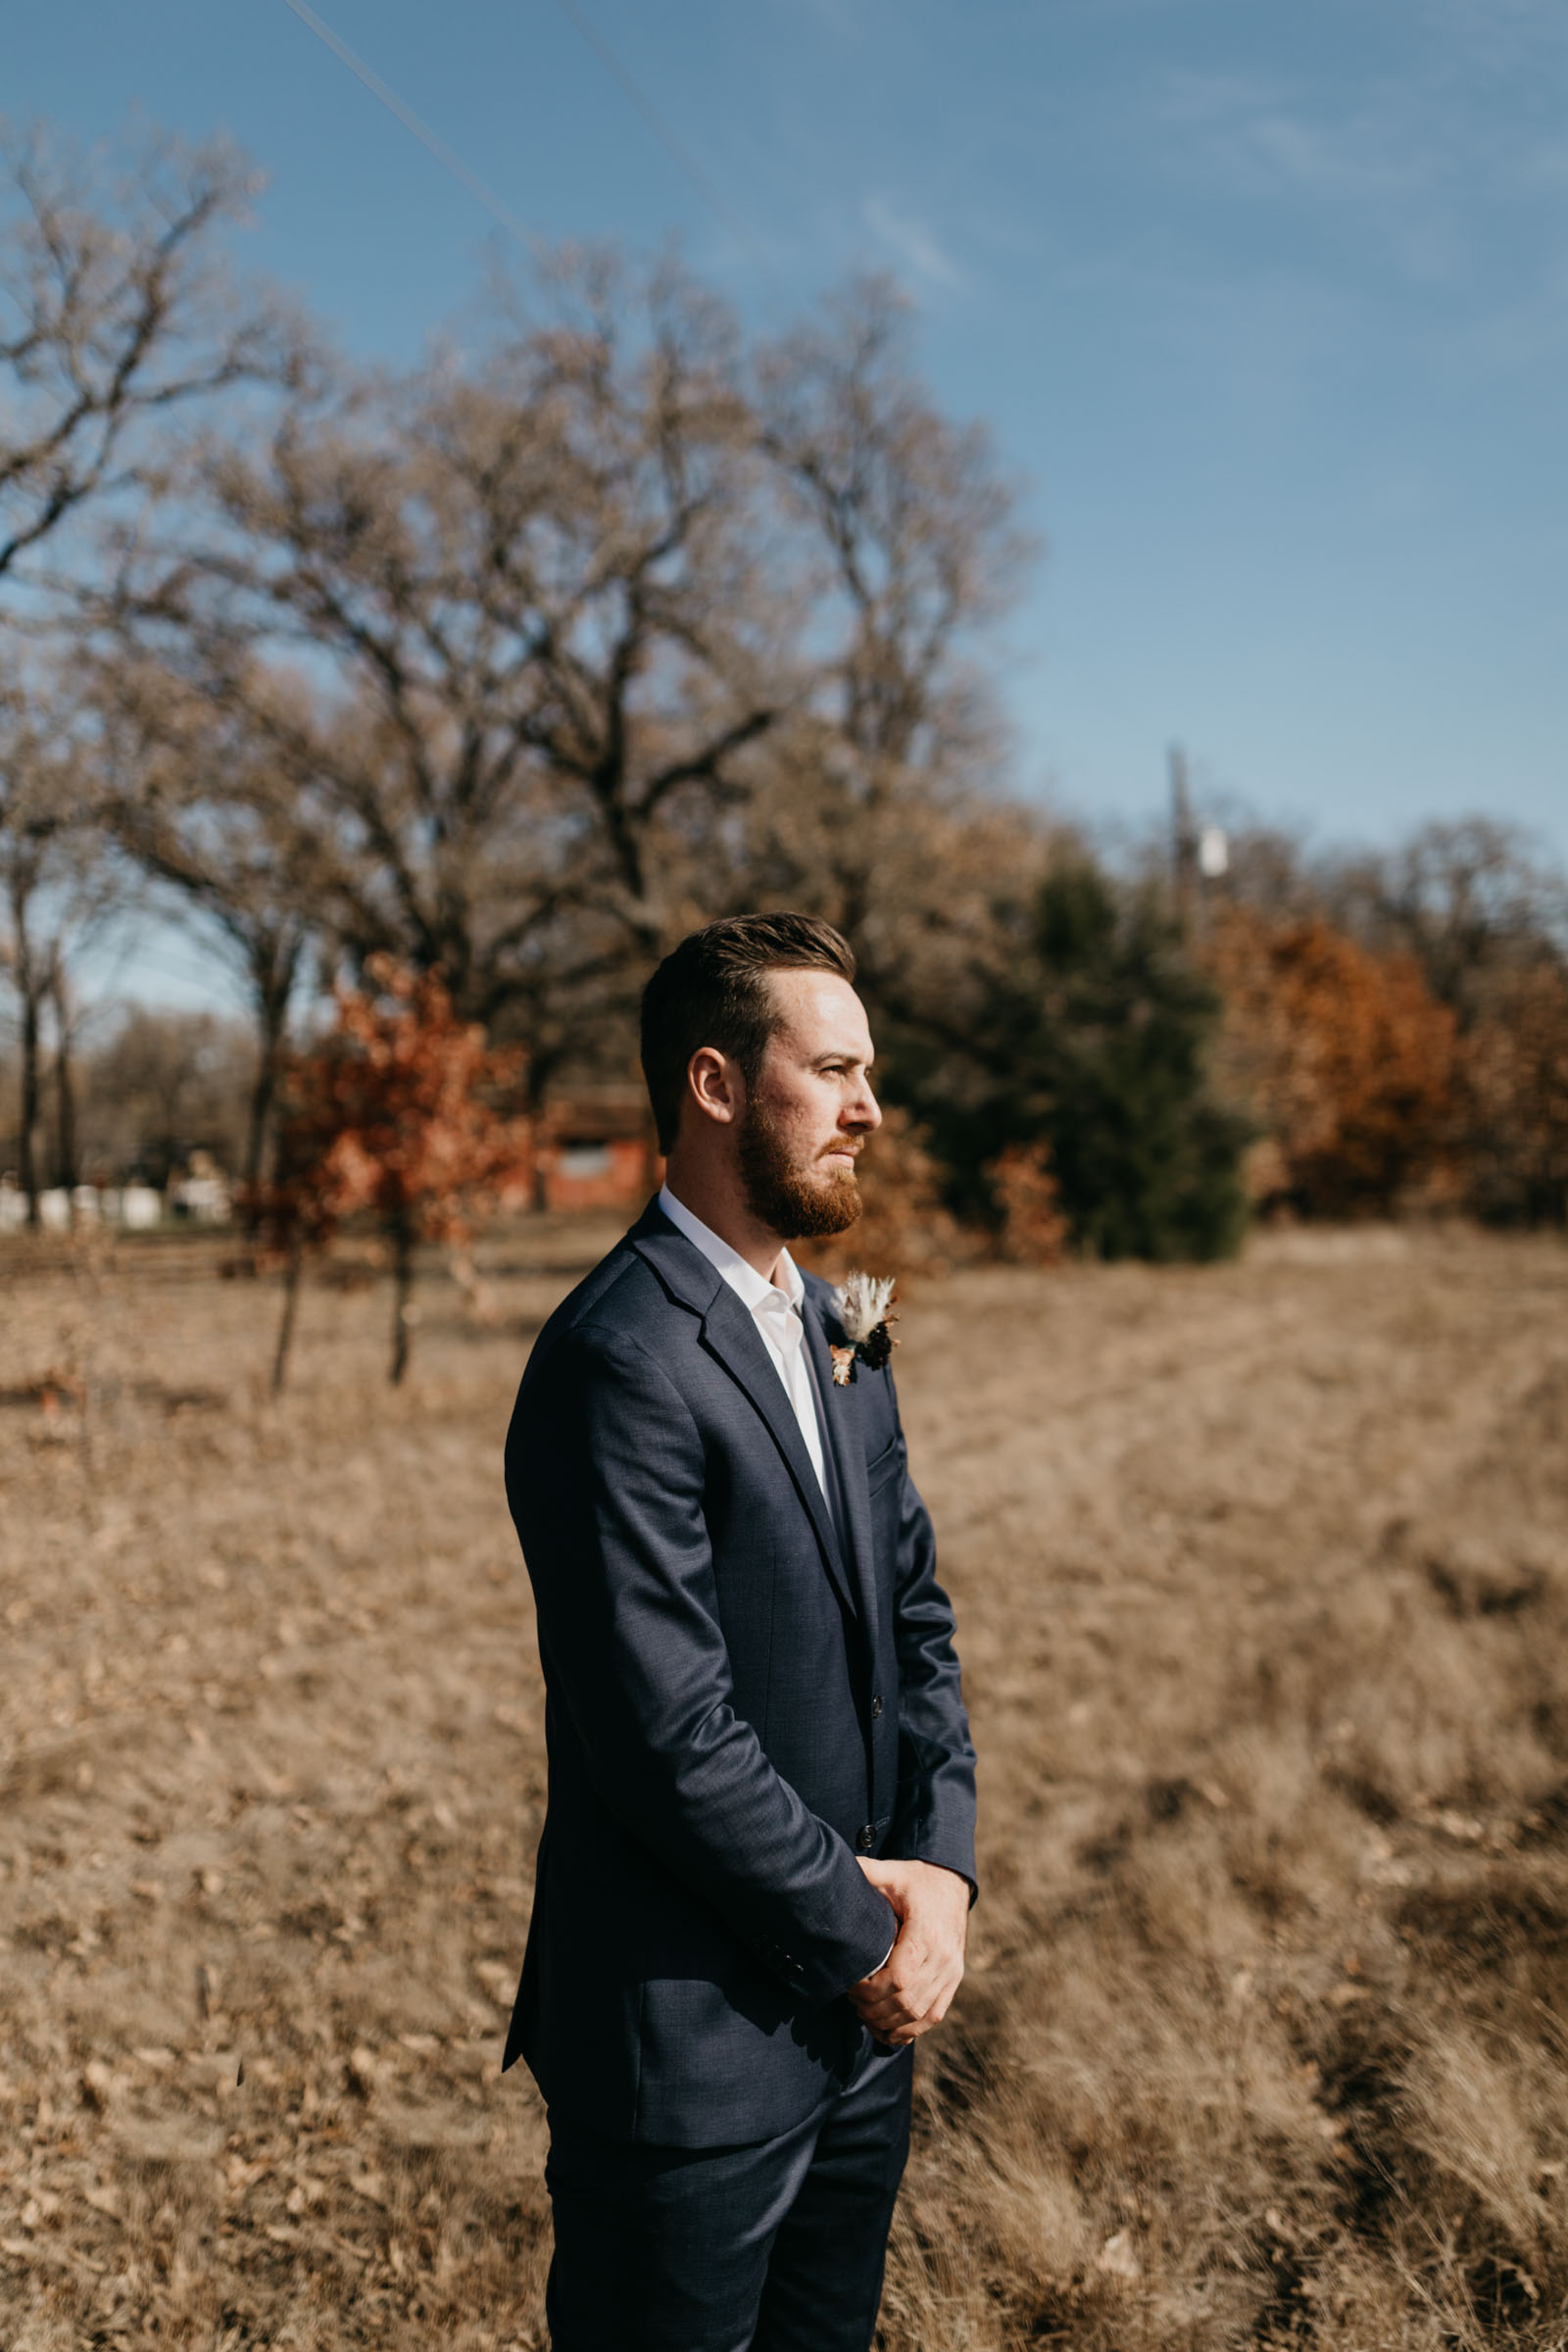 Groom waiting to see bride for the first time on their wedding day in a field